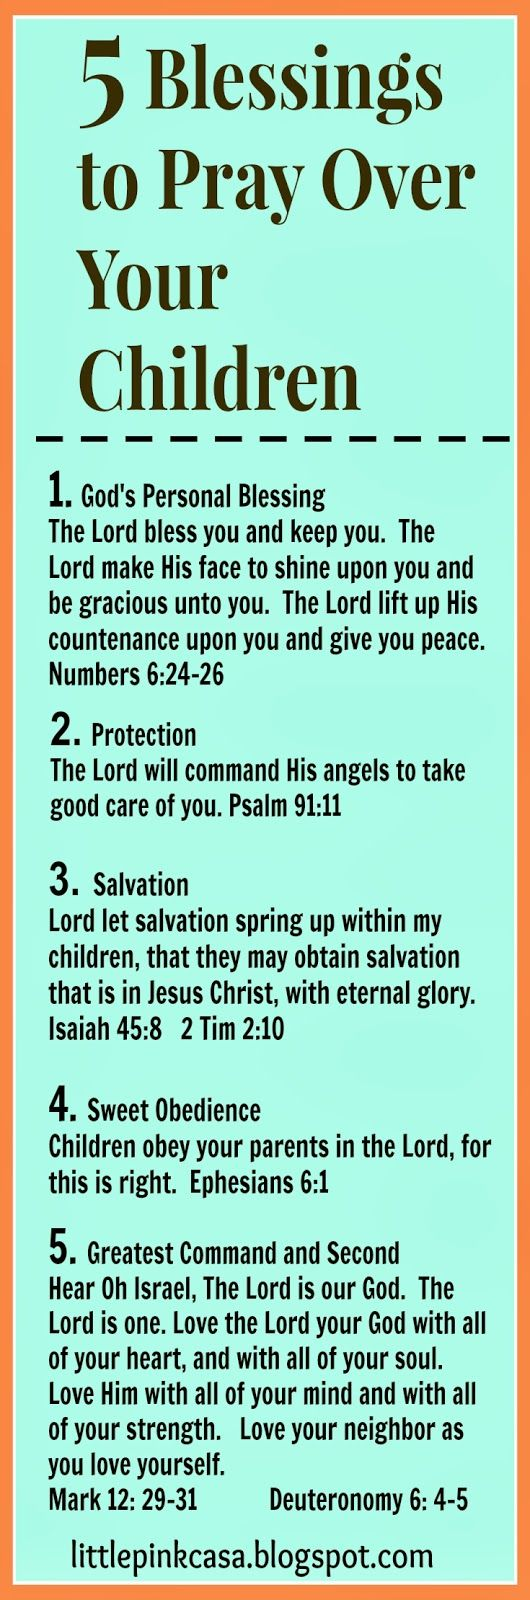 Day 1: 5 Blessings To Pray Over Your Children {5 Day of Blessings For Your Family Series} { Days  1 thru 5}  Day 1: 5 Blessi...